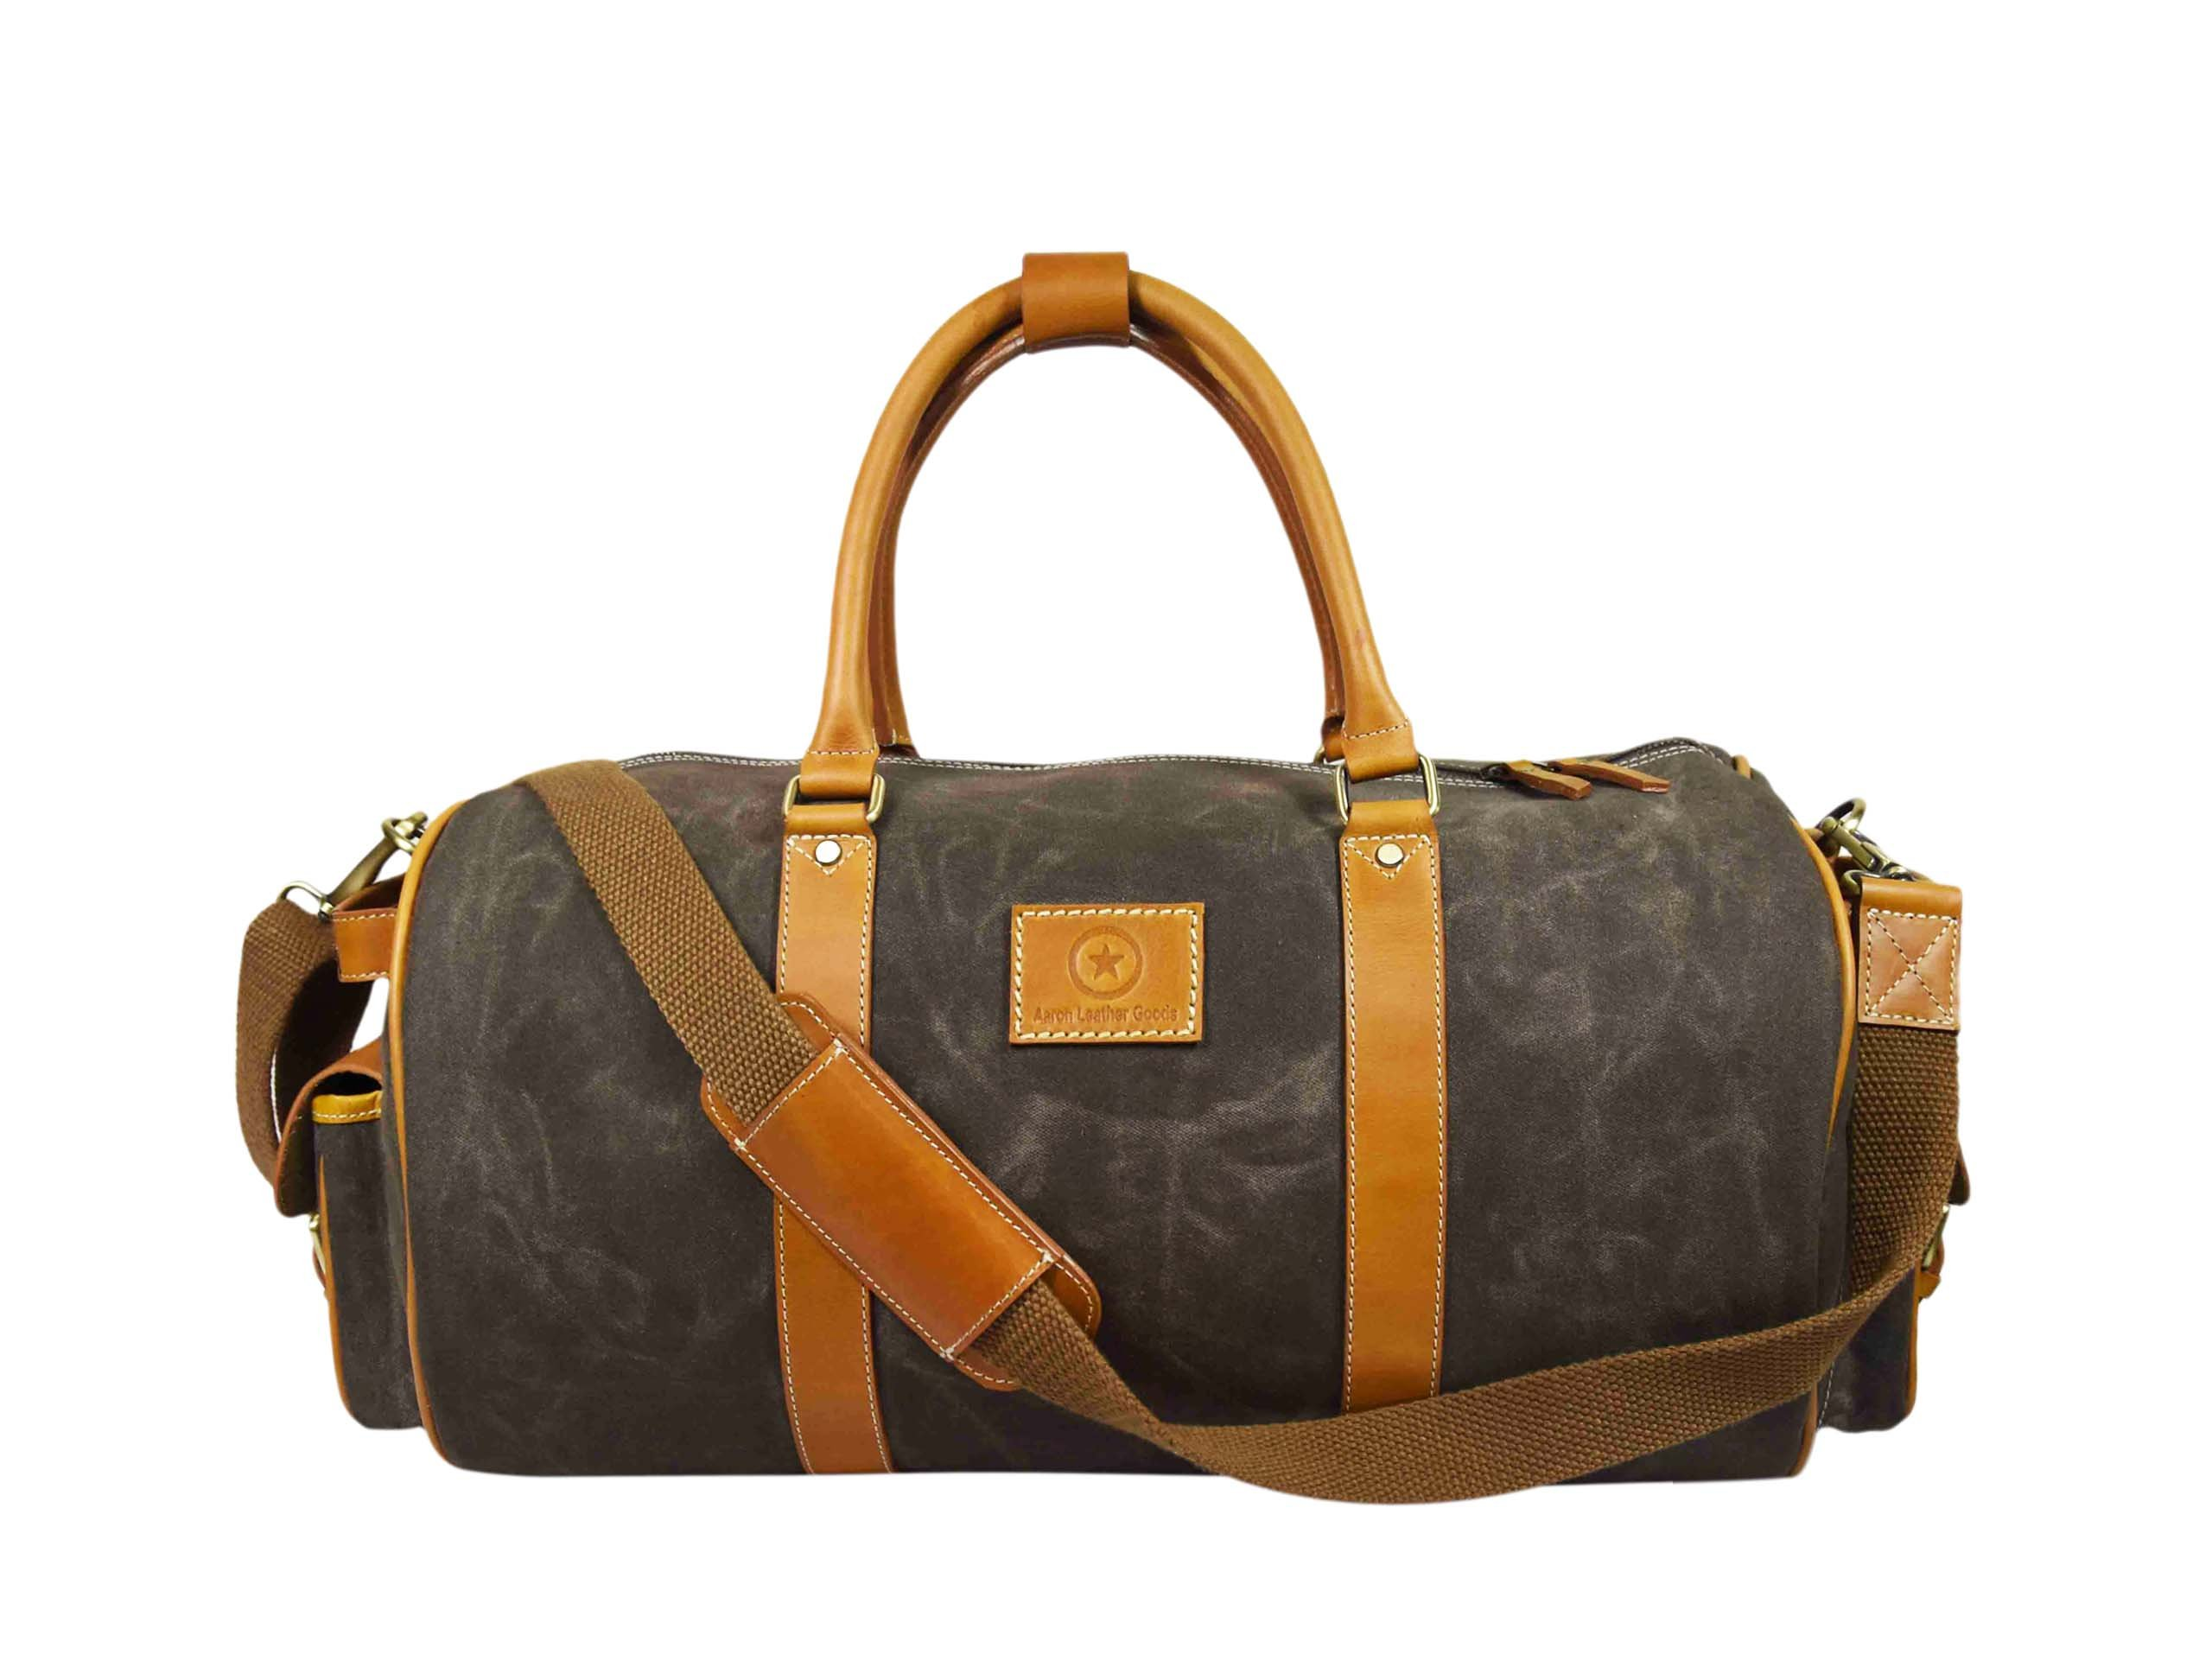 Water-Resistant Retro Style Travel Duffle Bag| Waxed Canvas Multi-Functional Weekender Bag | Unisex Holdall Bag By Aaron Leather (Brown)